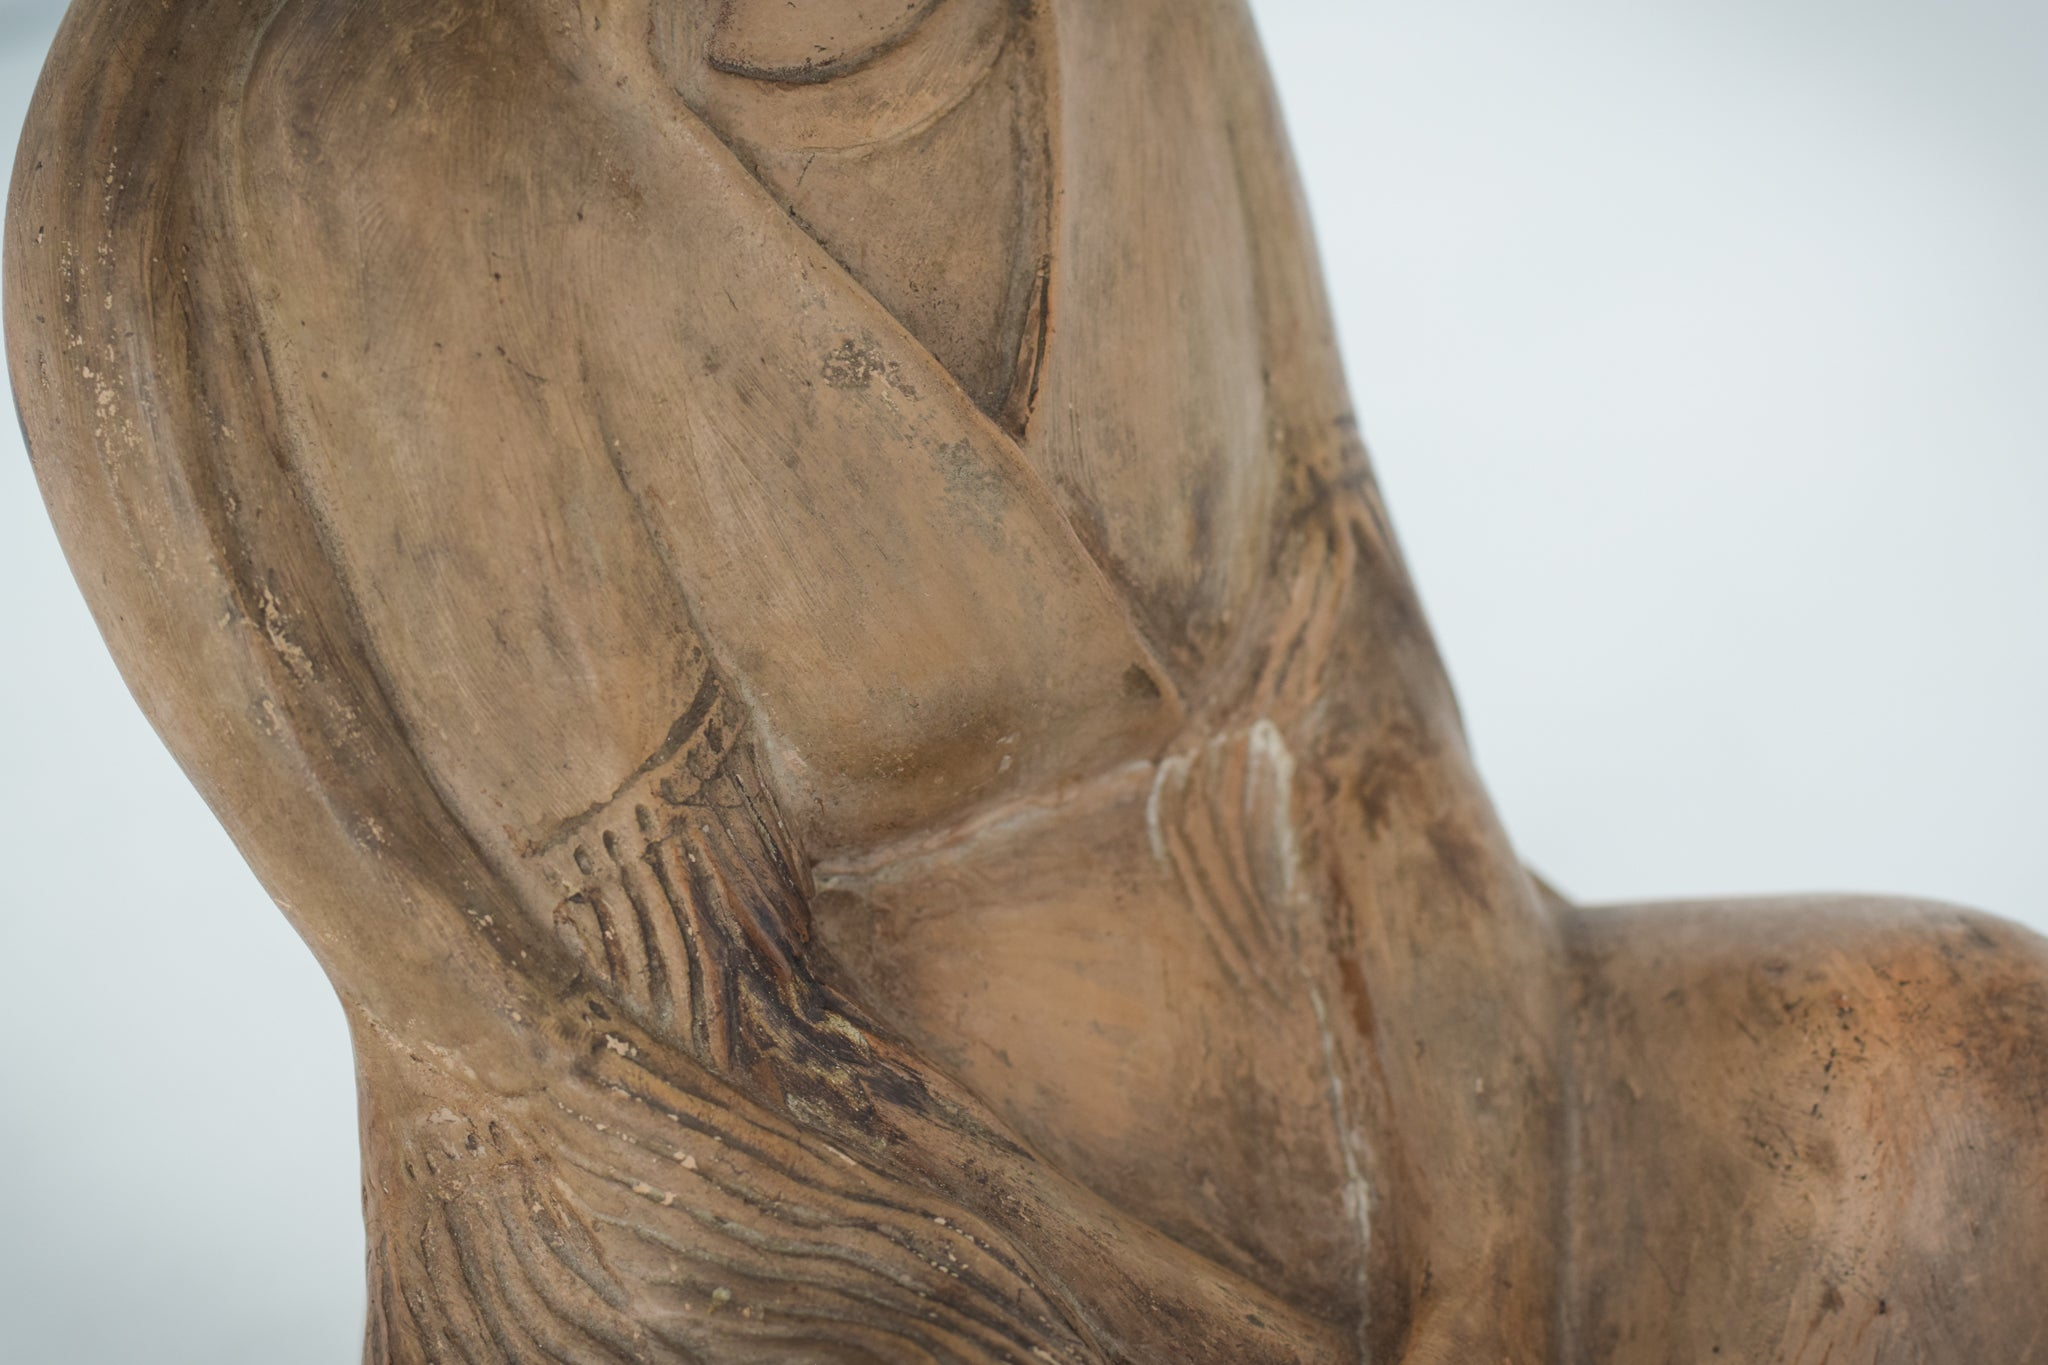 Terracotta Sculpture of A Draped Seated Woman_Detail 3